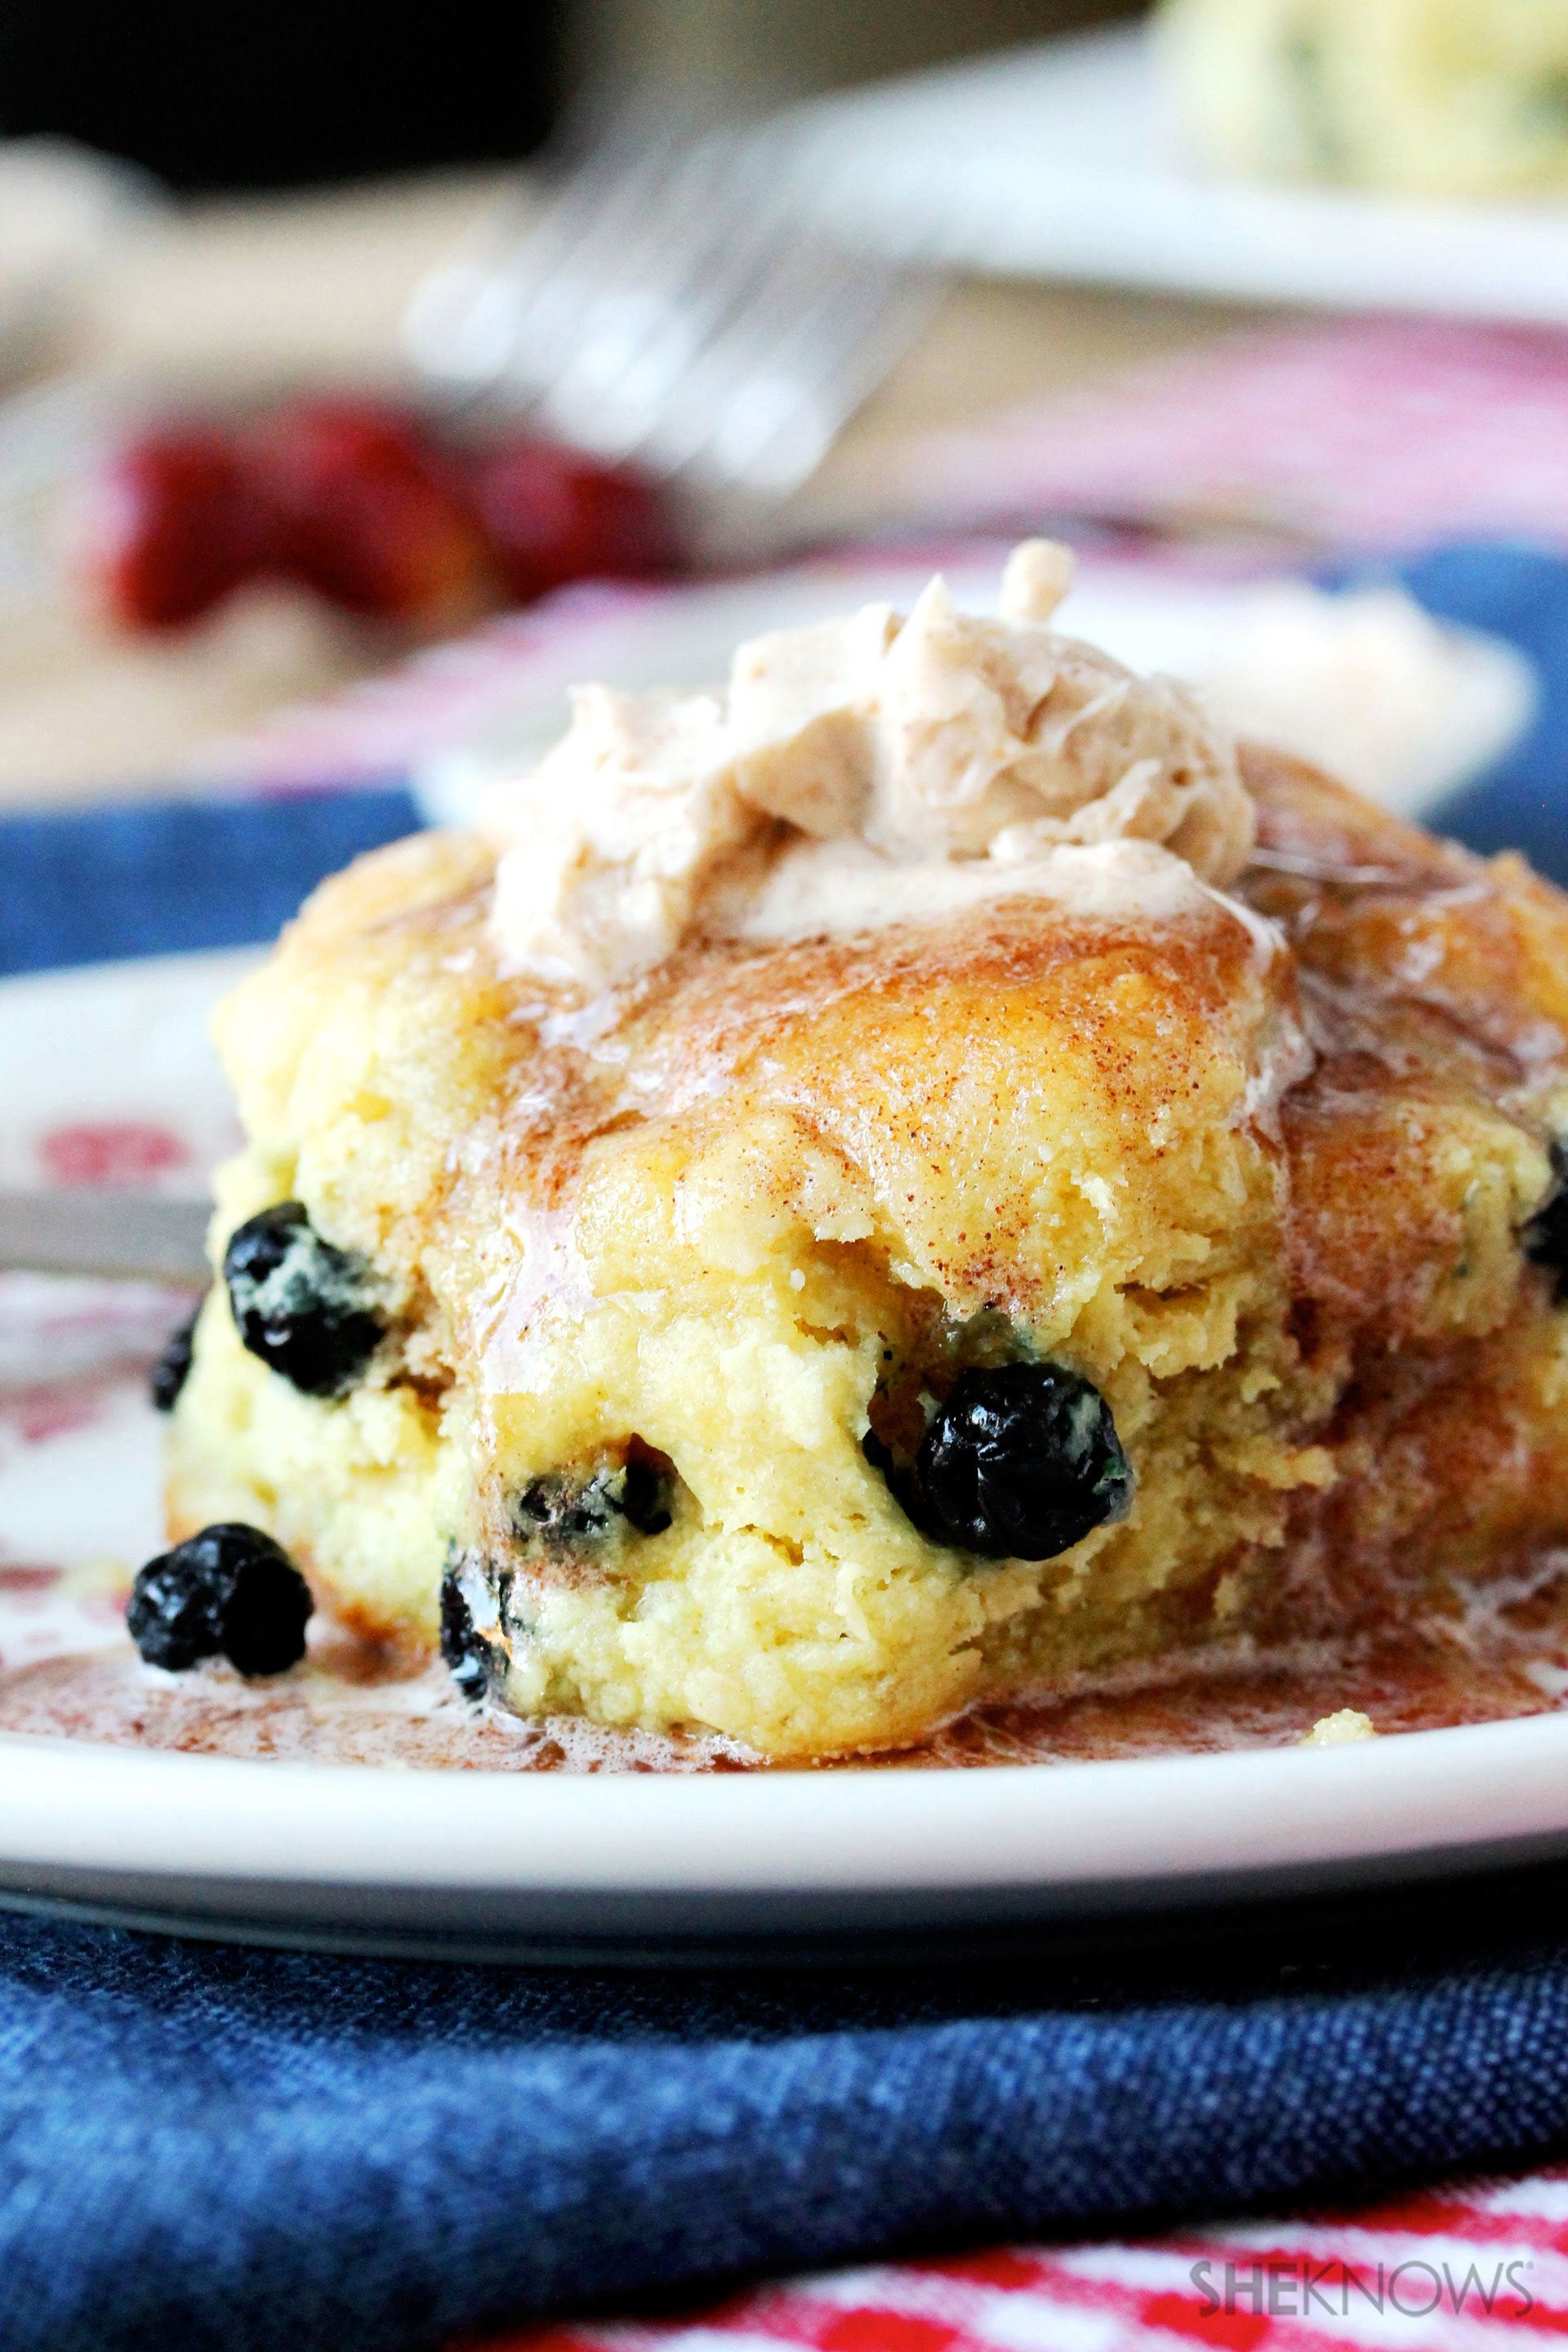 Blueberry-studded biscuits for breakfast